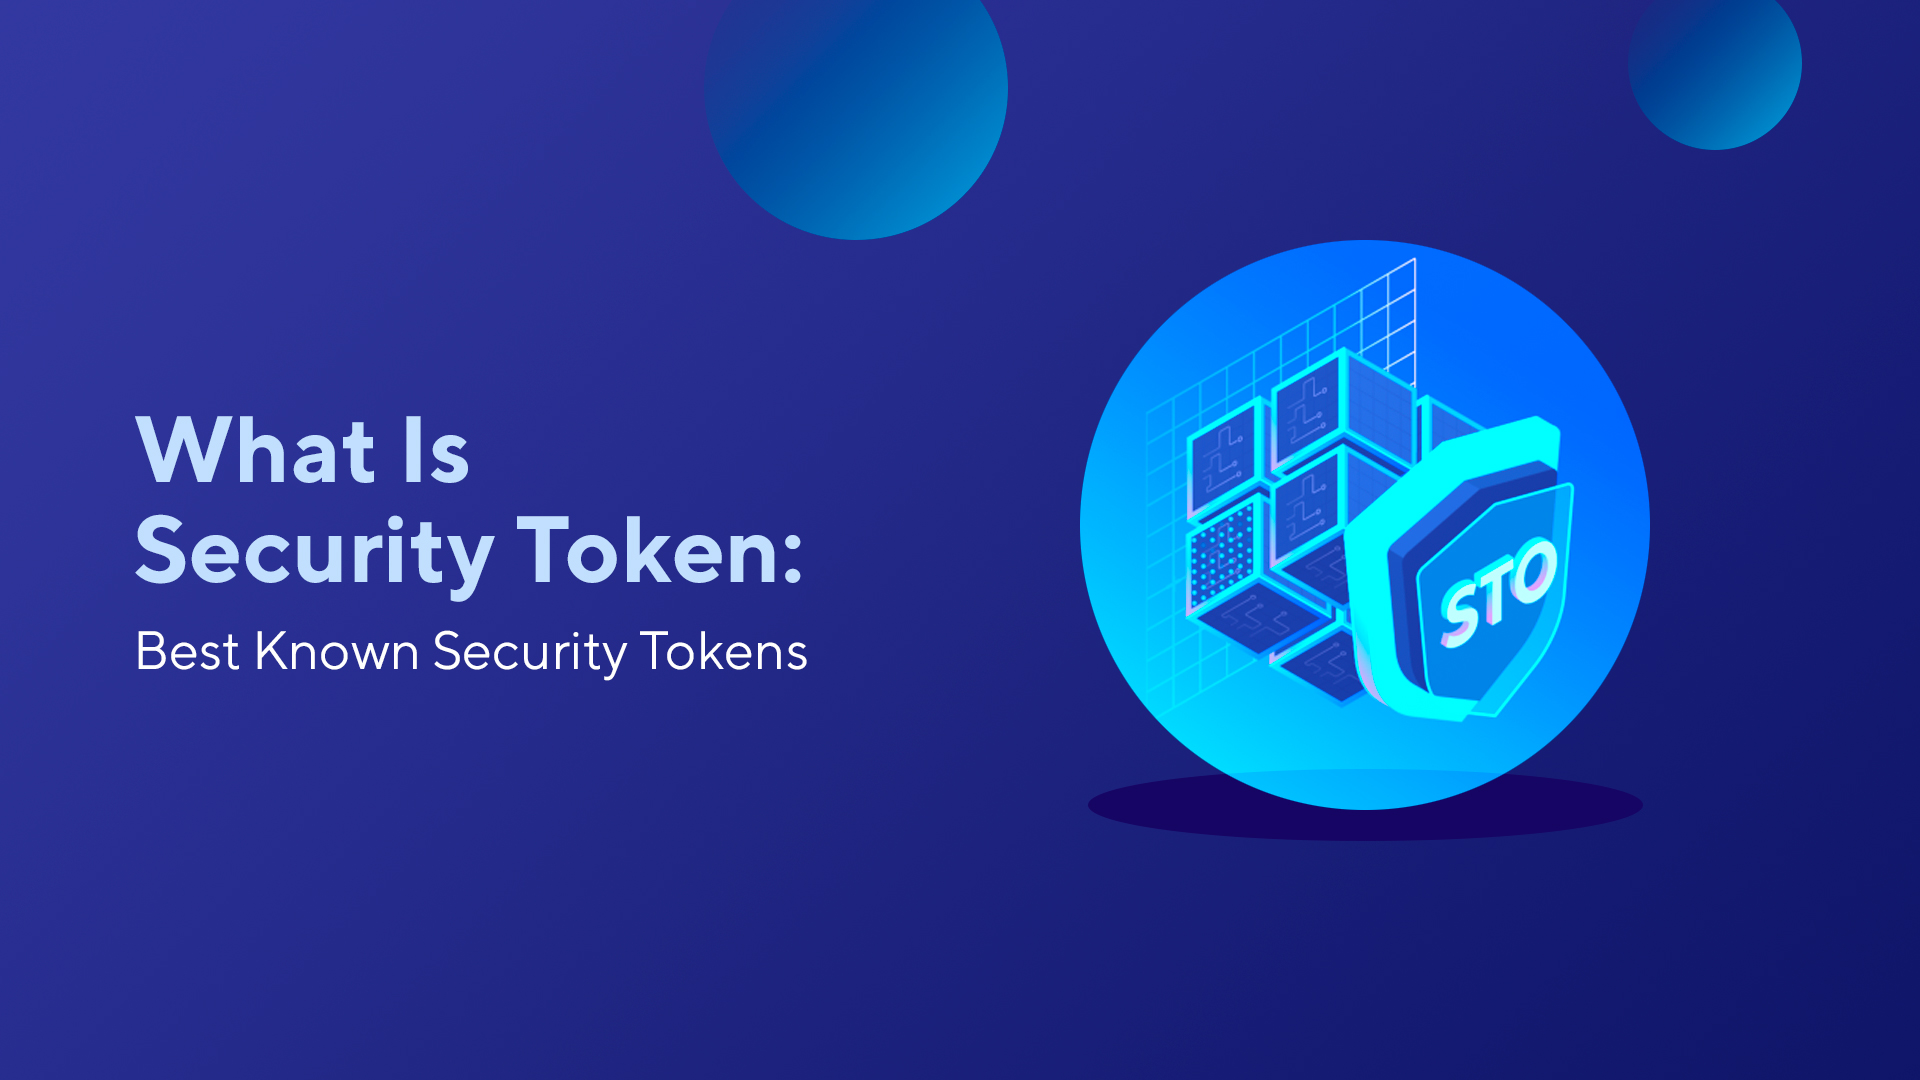 What Is Security Token: Best Known Security Tokens